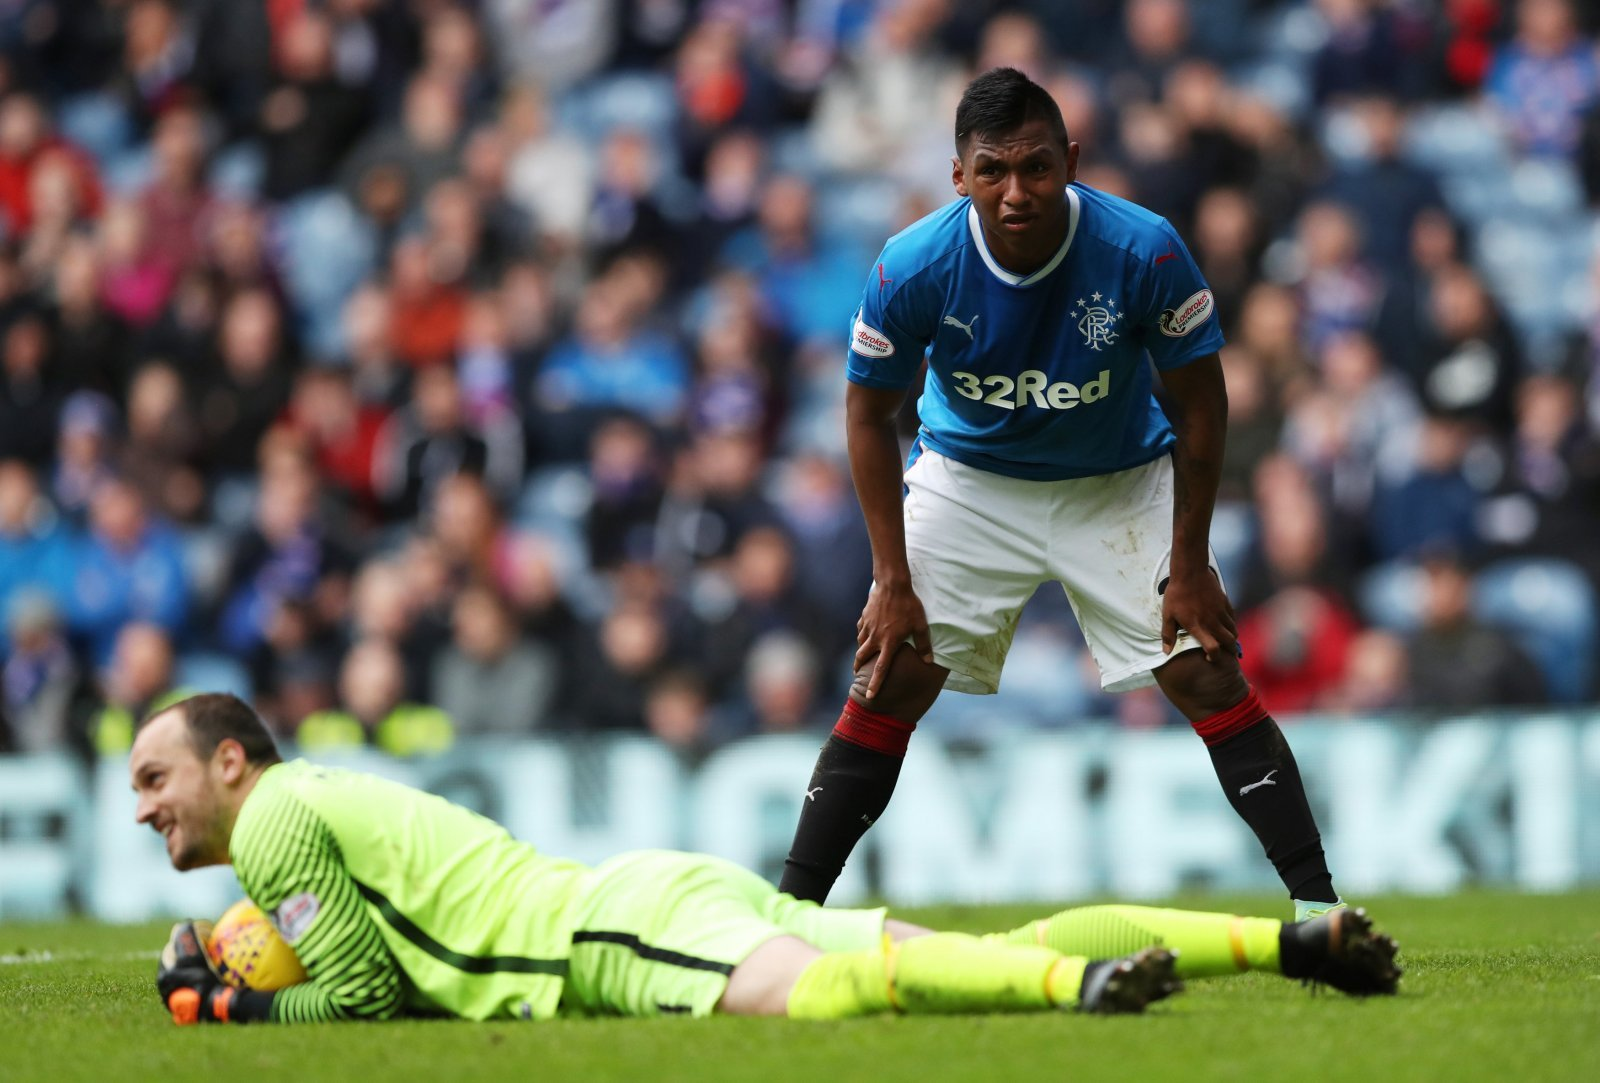 Alfredo Morelos is one man that Rangers fans won't let go cheaply